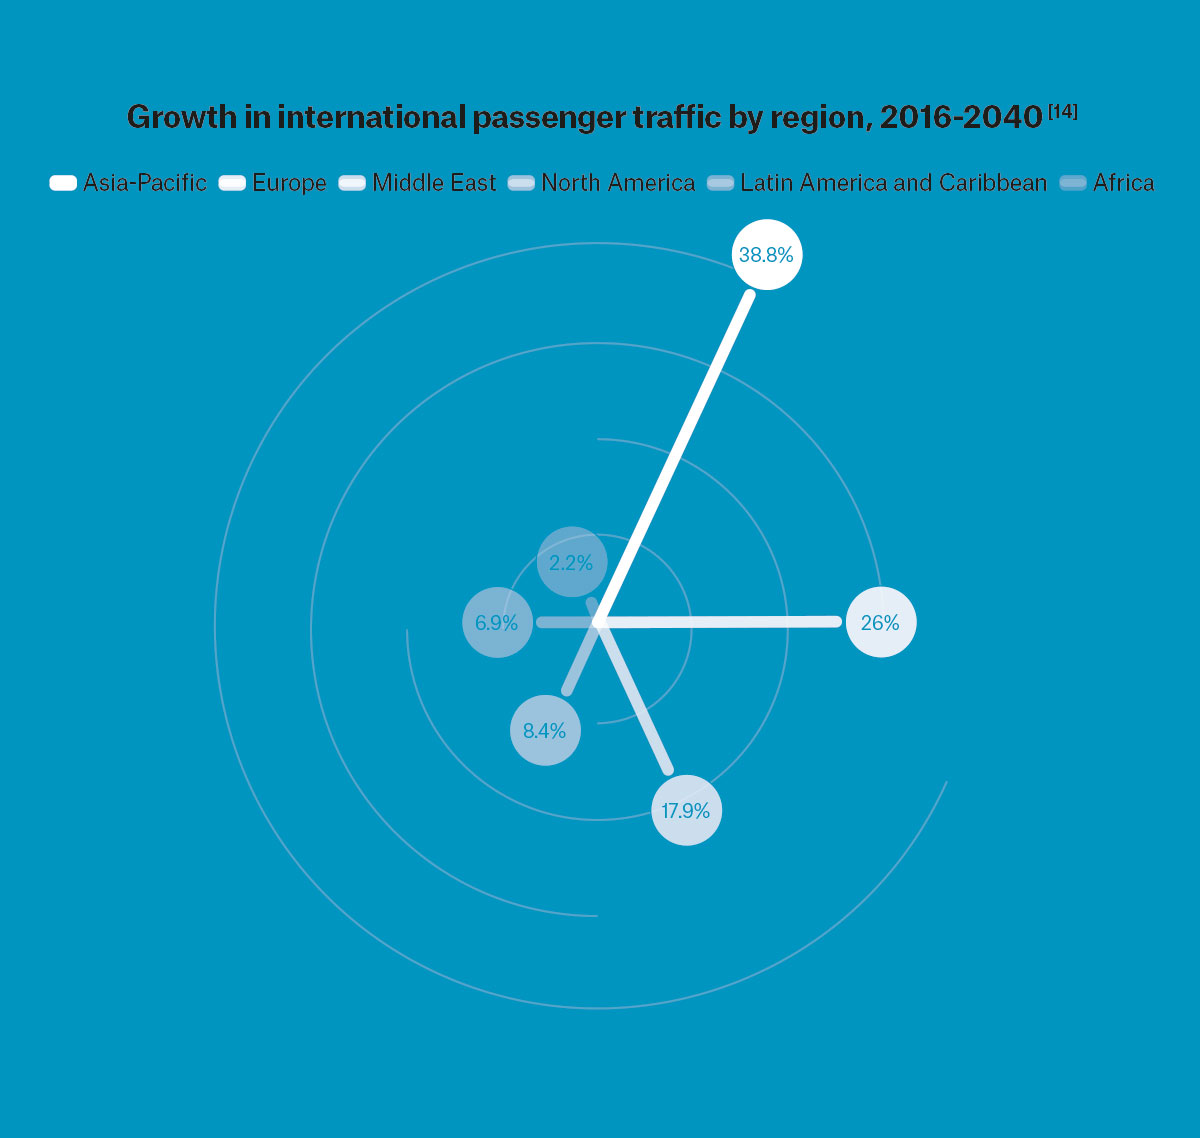 Graph showing the growth in international passenger traffic by region between 2016 and 2040